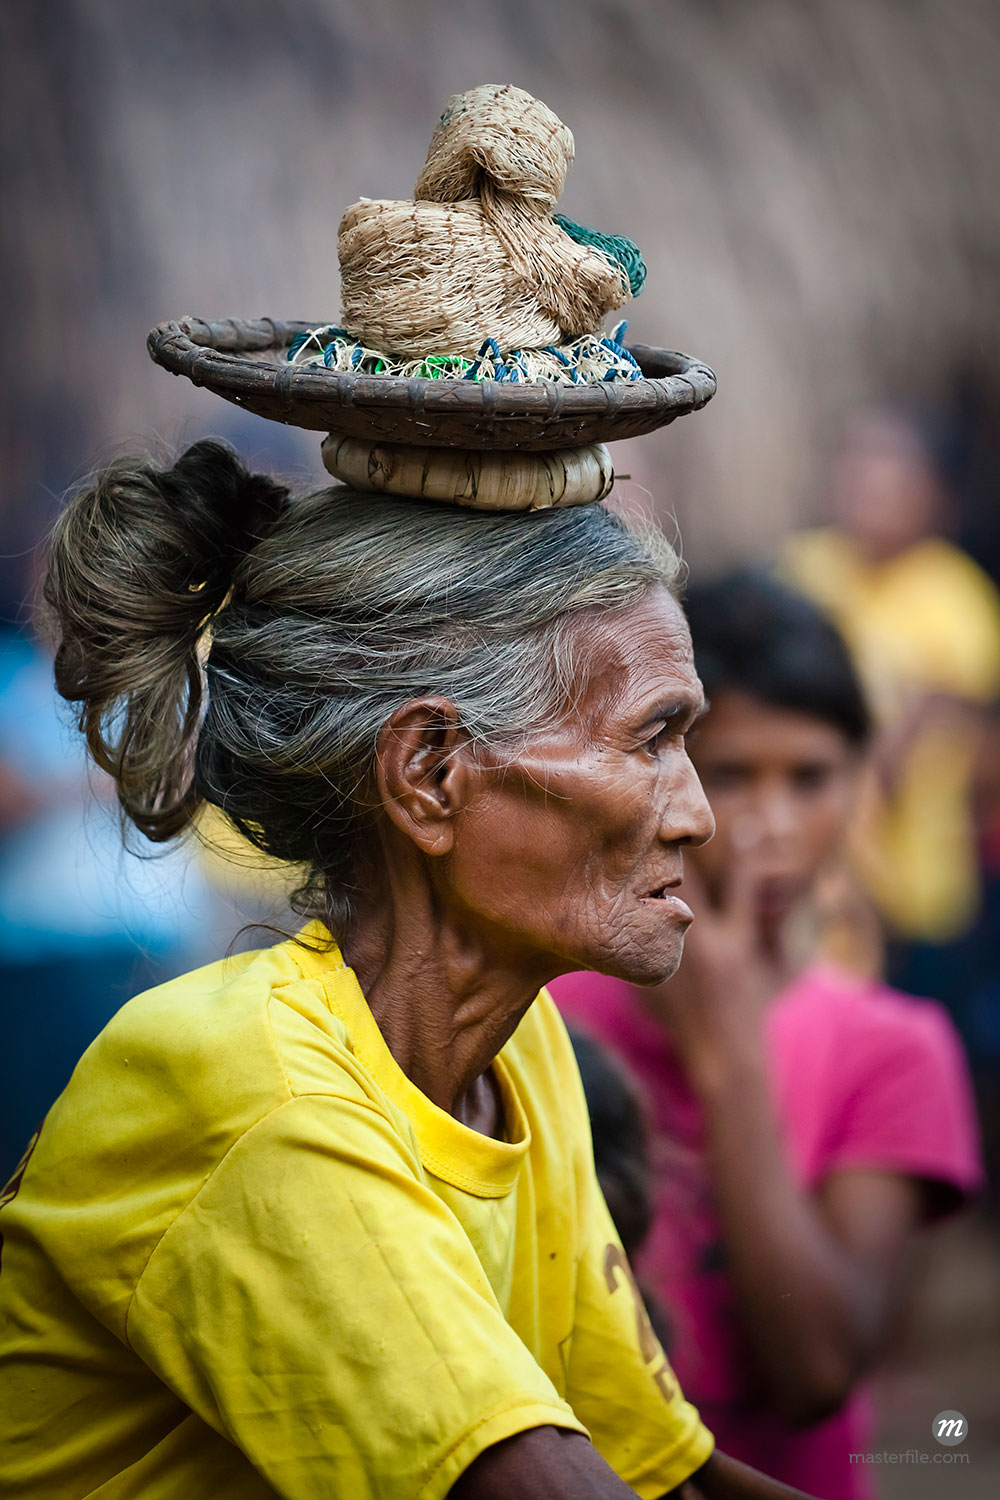 Woman with Basket on Head, Waihola Village, Sumba, Indonesia  ©  R. Ian Lloyd / Masterfile